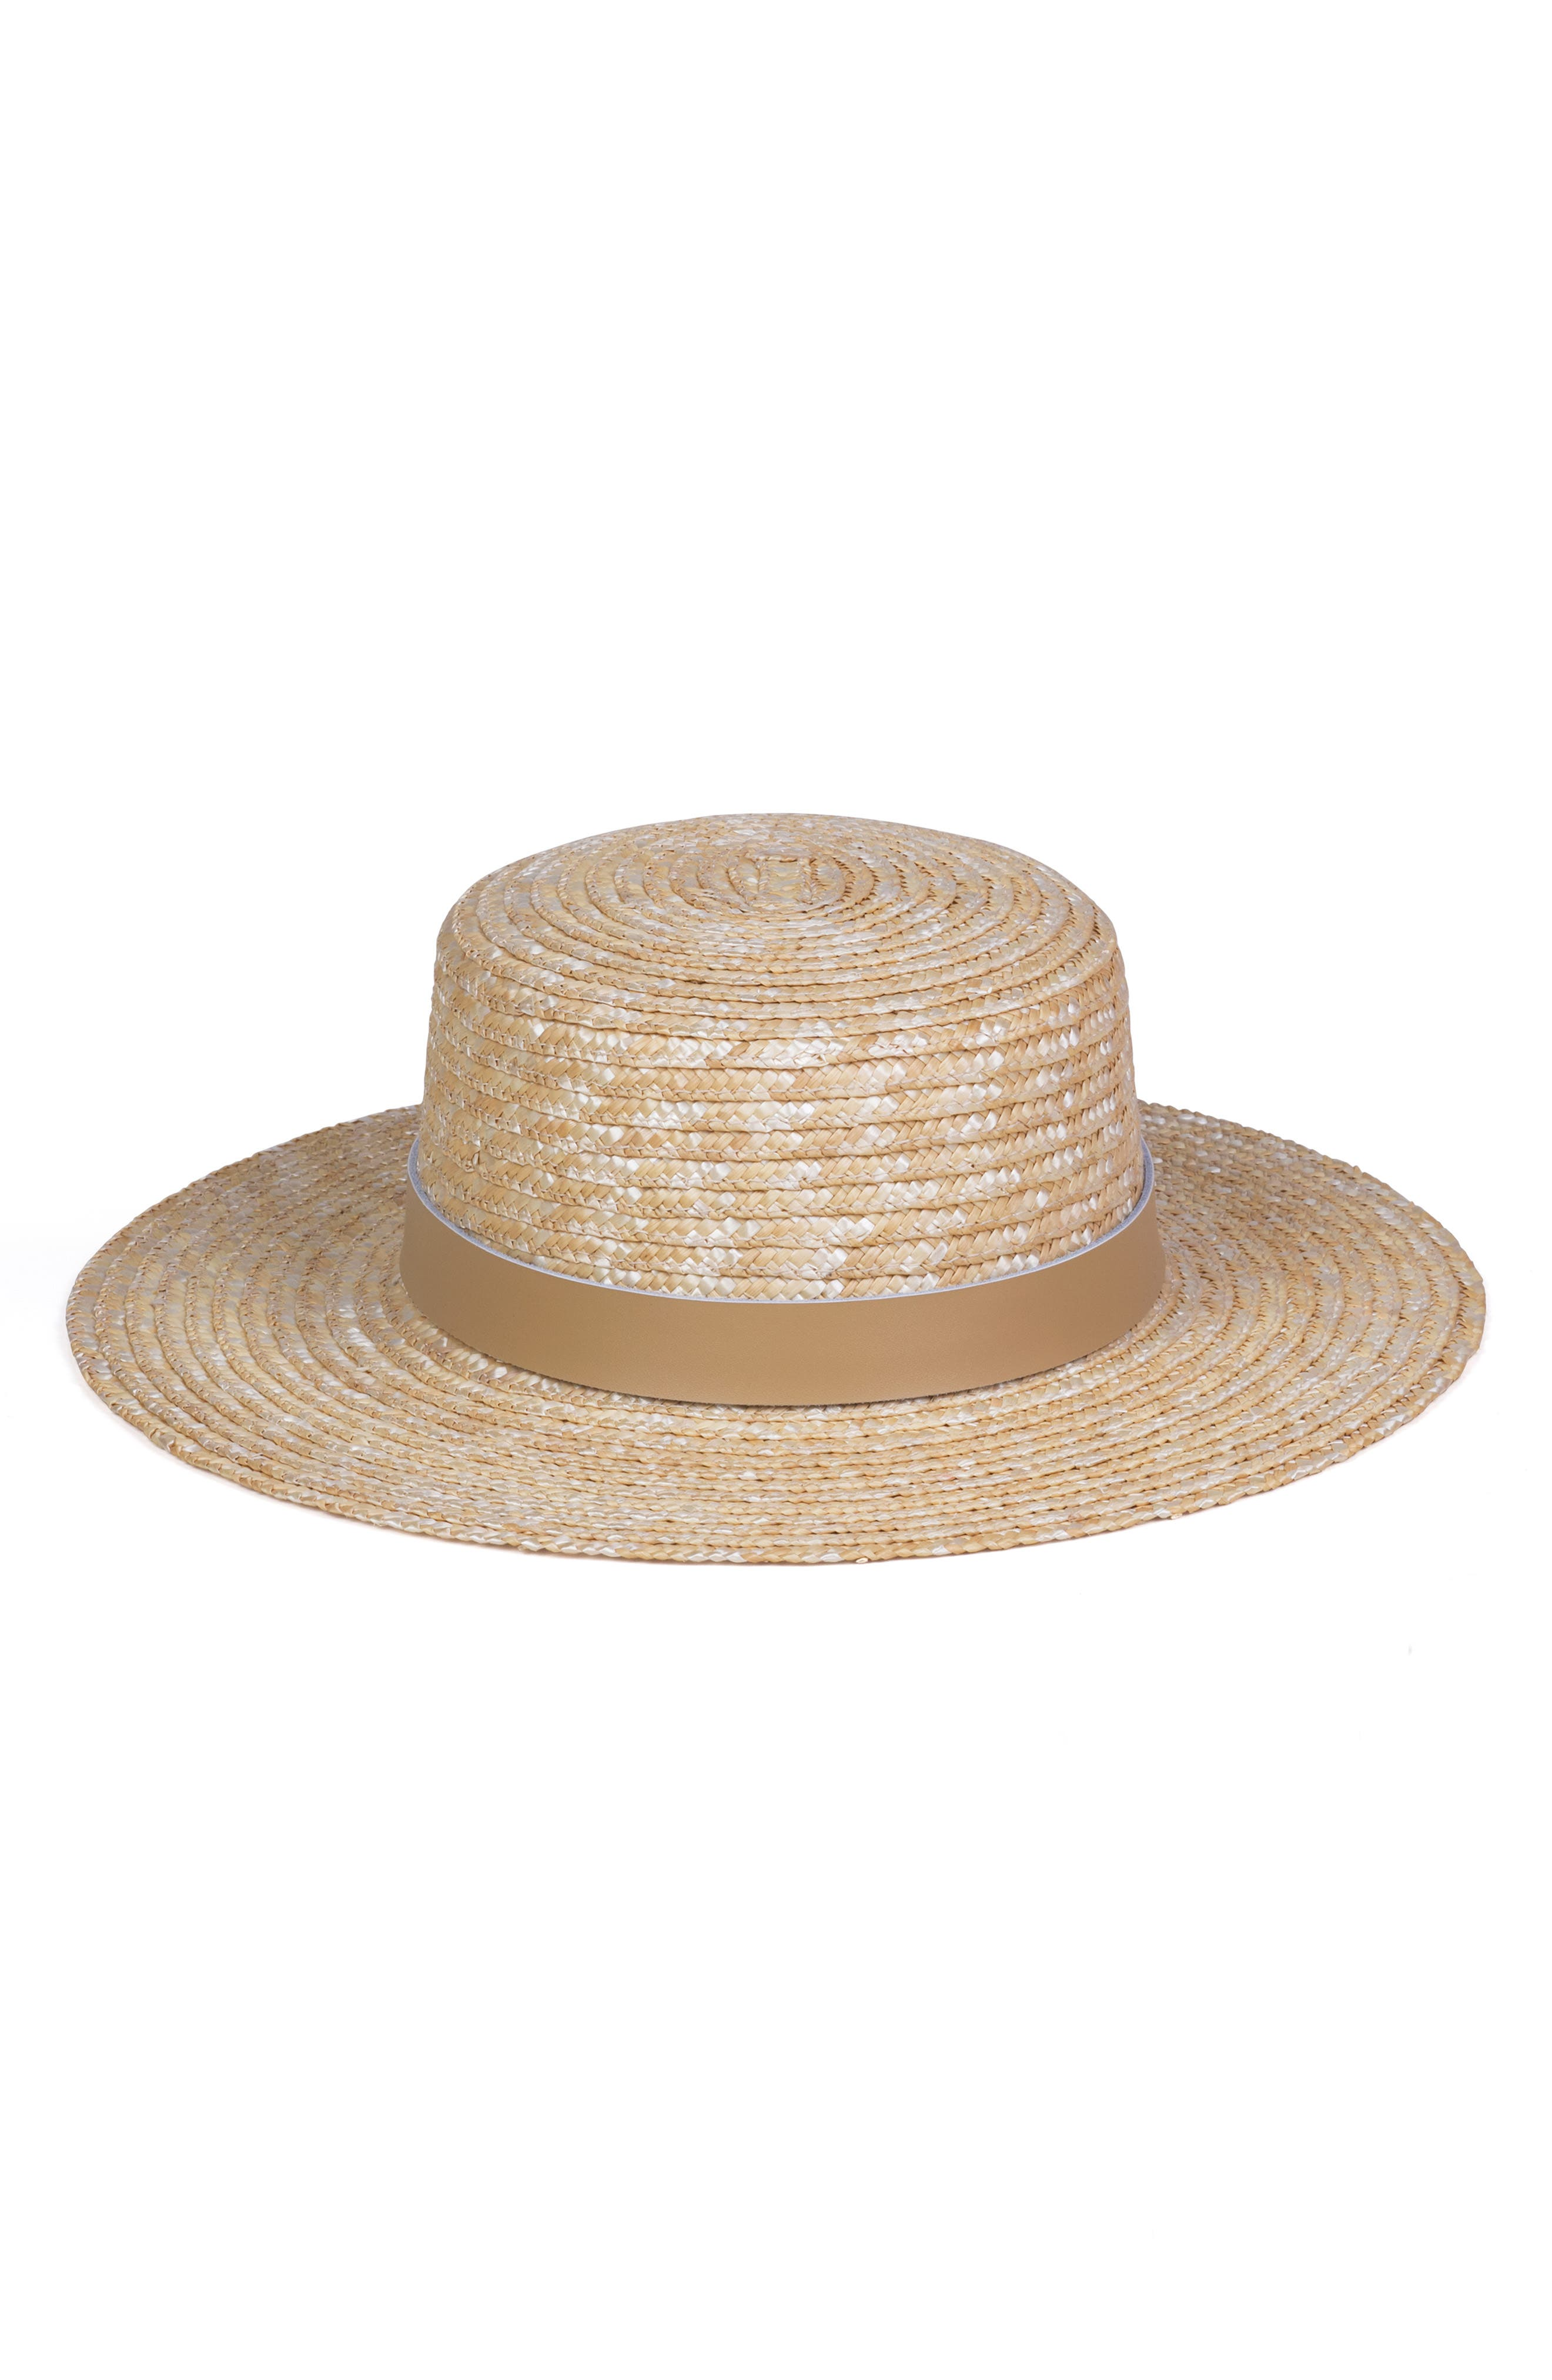 LACK OF COLOR Spencer Leather Band Straw Hat - Brown